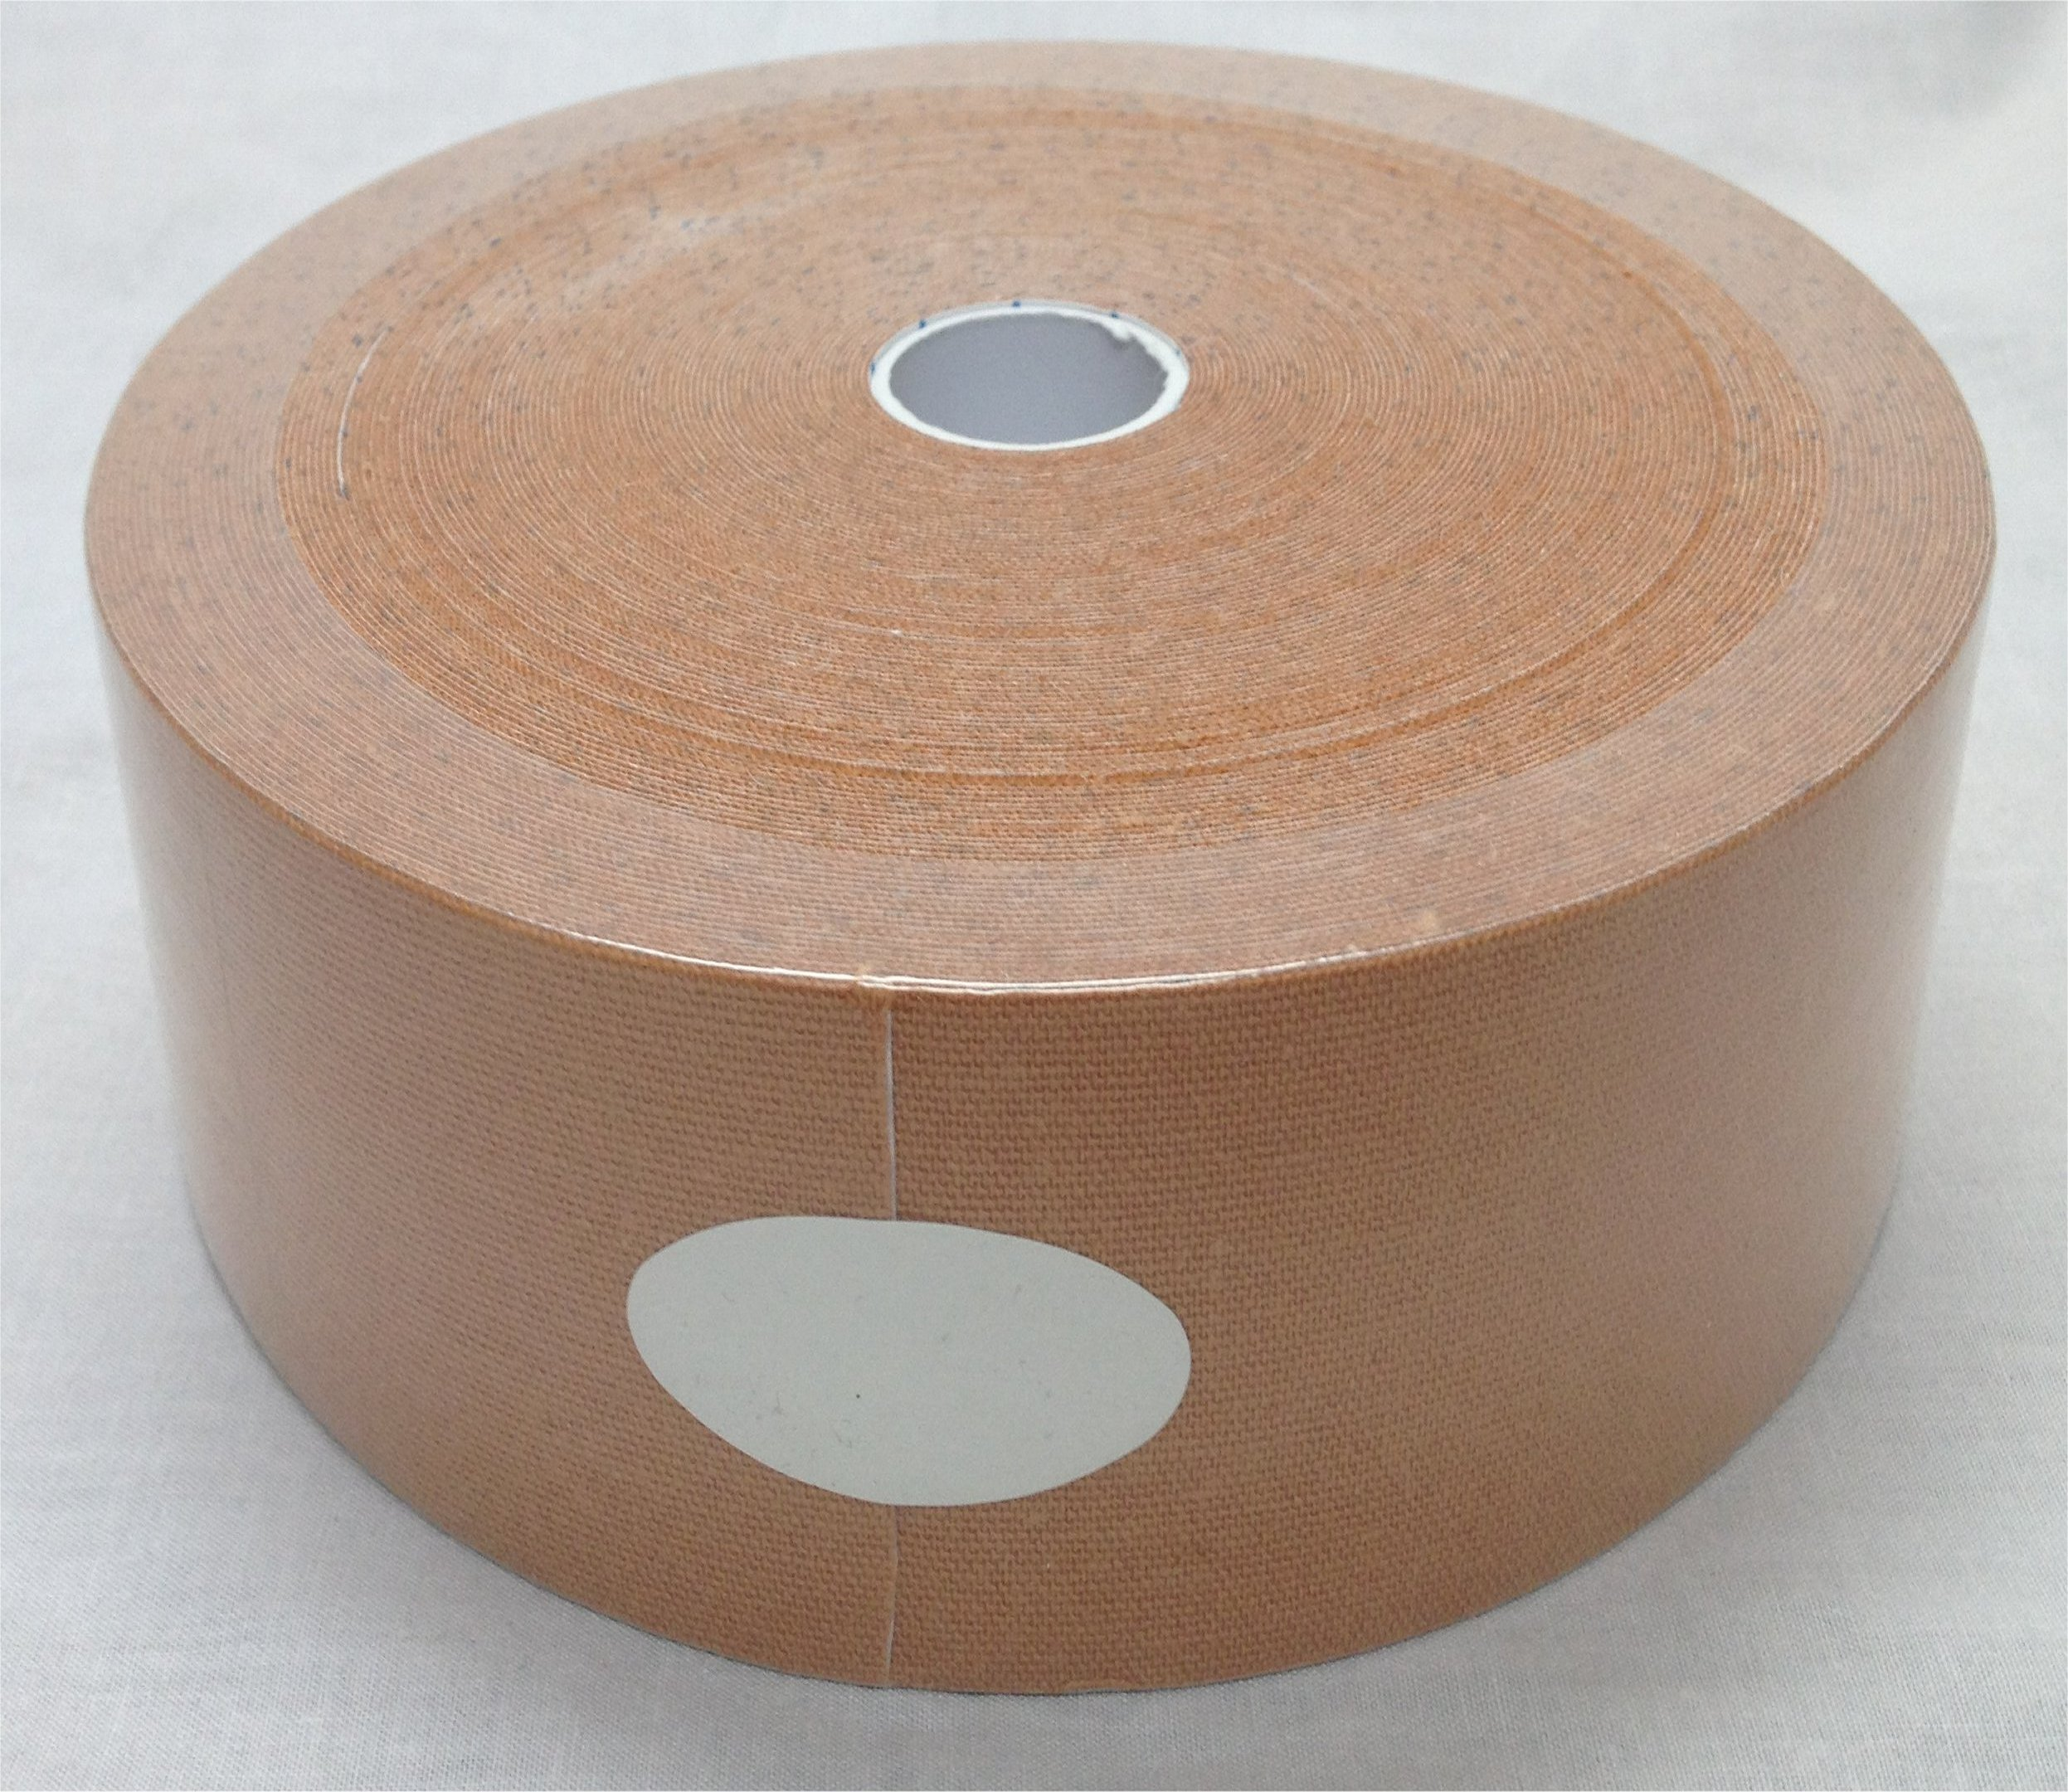 Therapist's Choice® Extra Wide Kinesiology Tape 3''x105' Bulk Roll (Beige) by Therapist's Choice